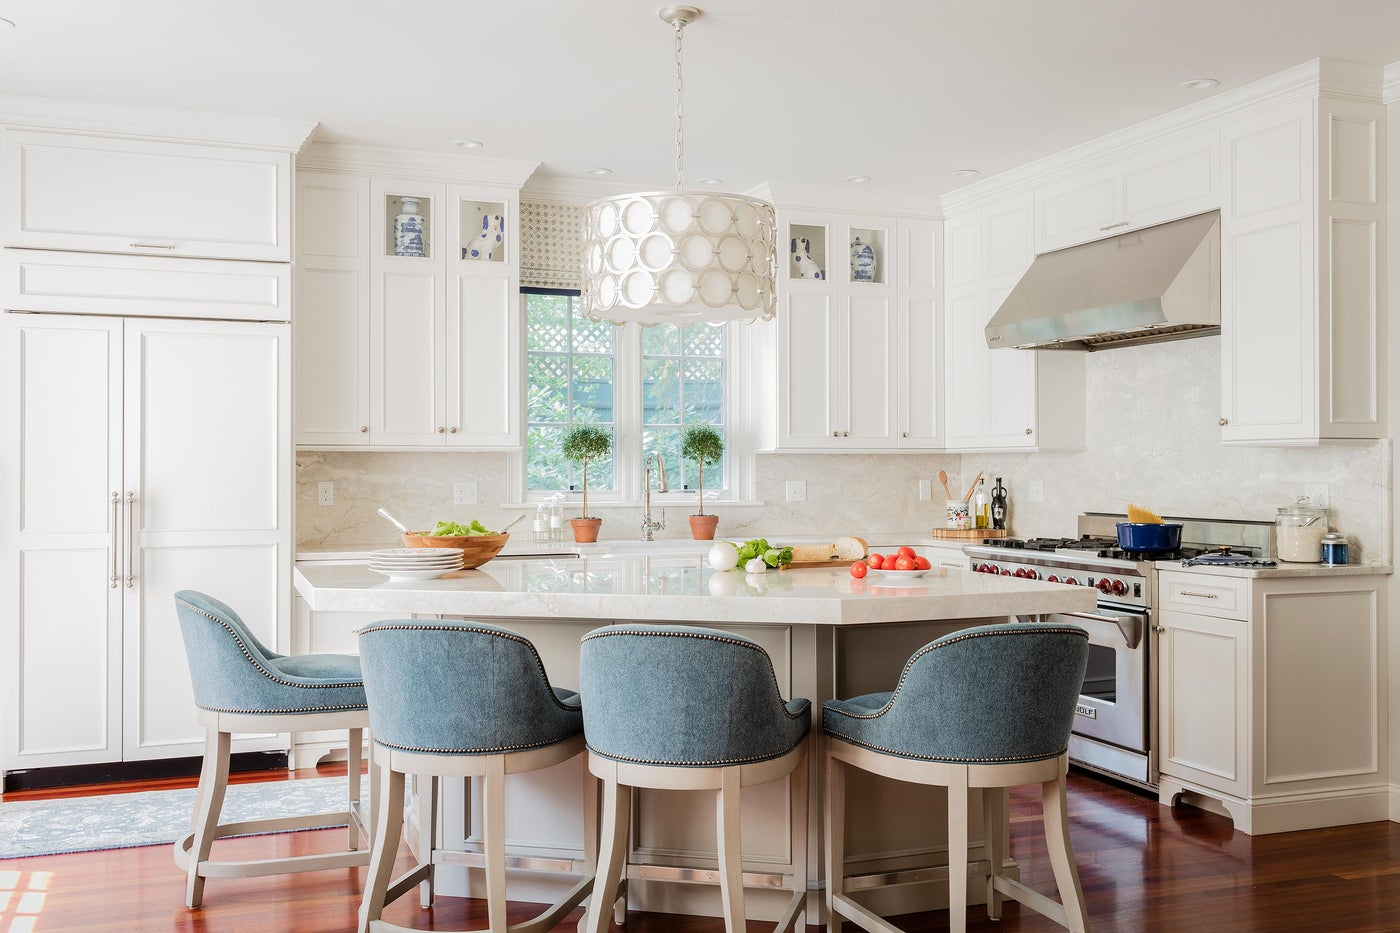 Wellesley (Blue and) White Kitchen